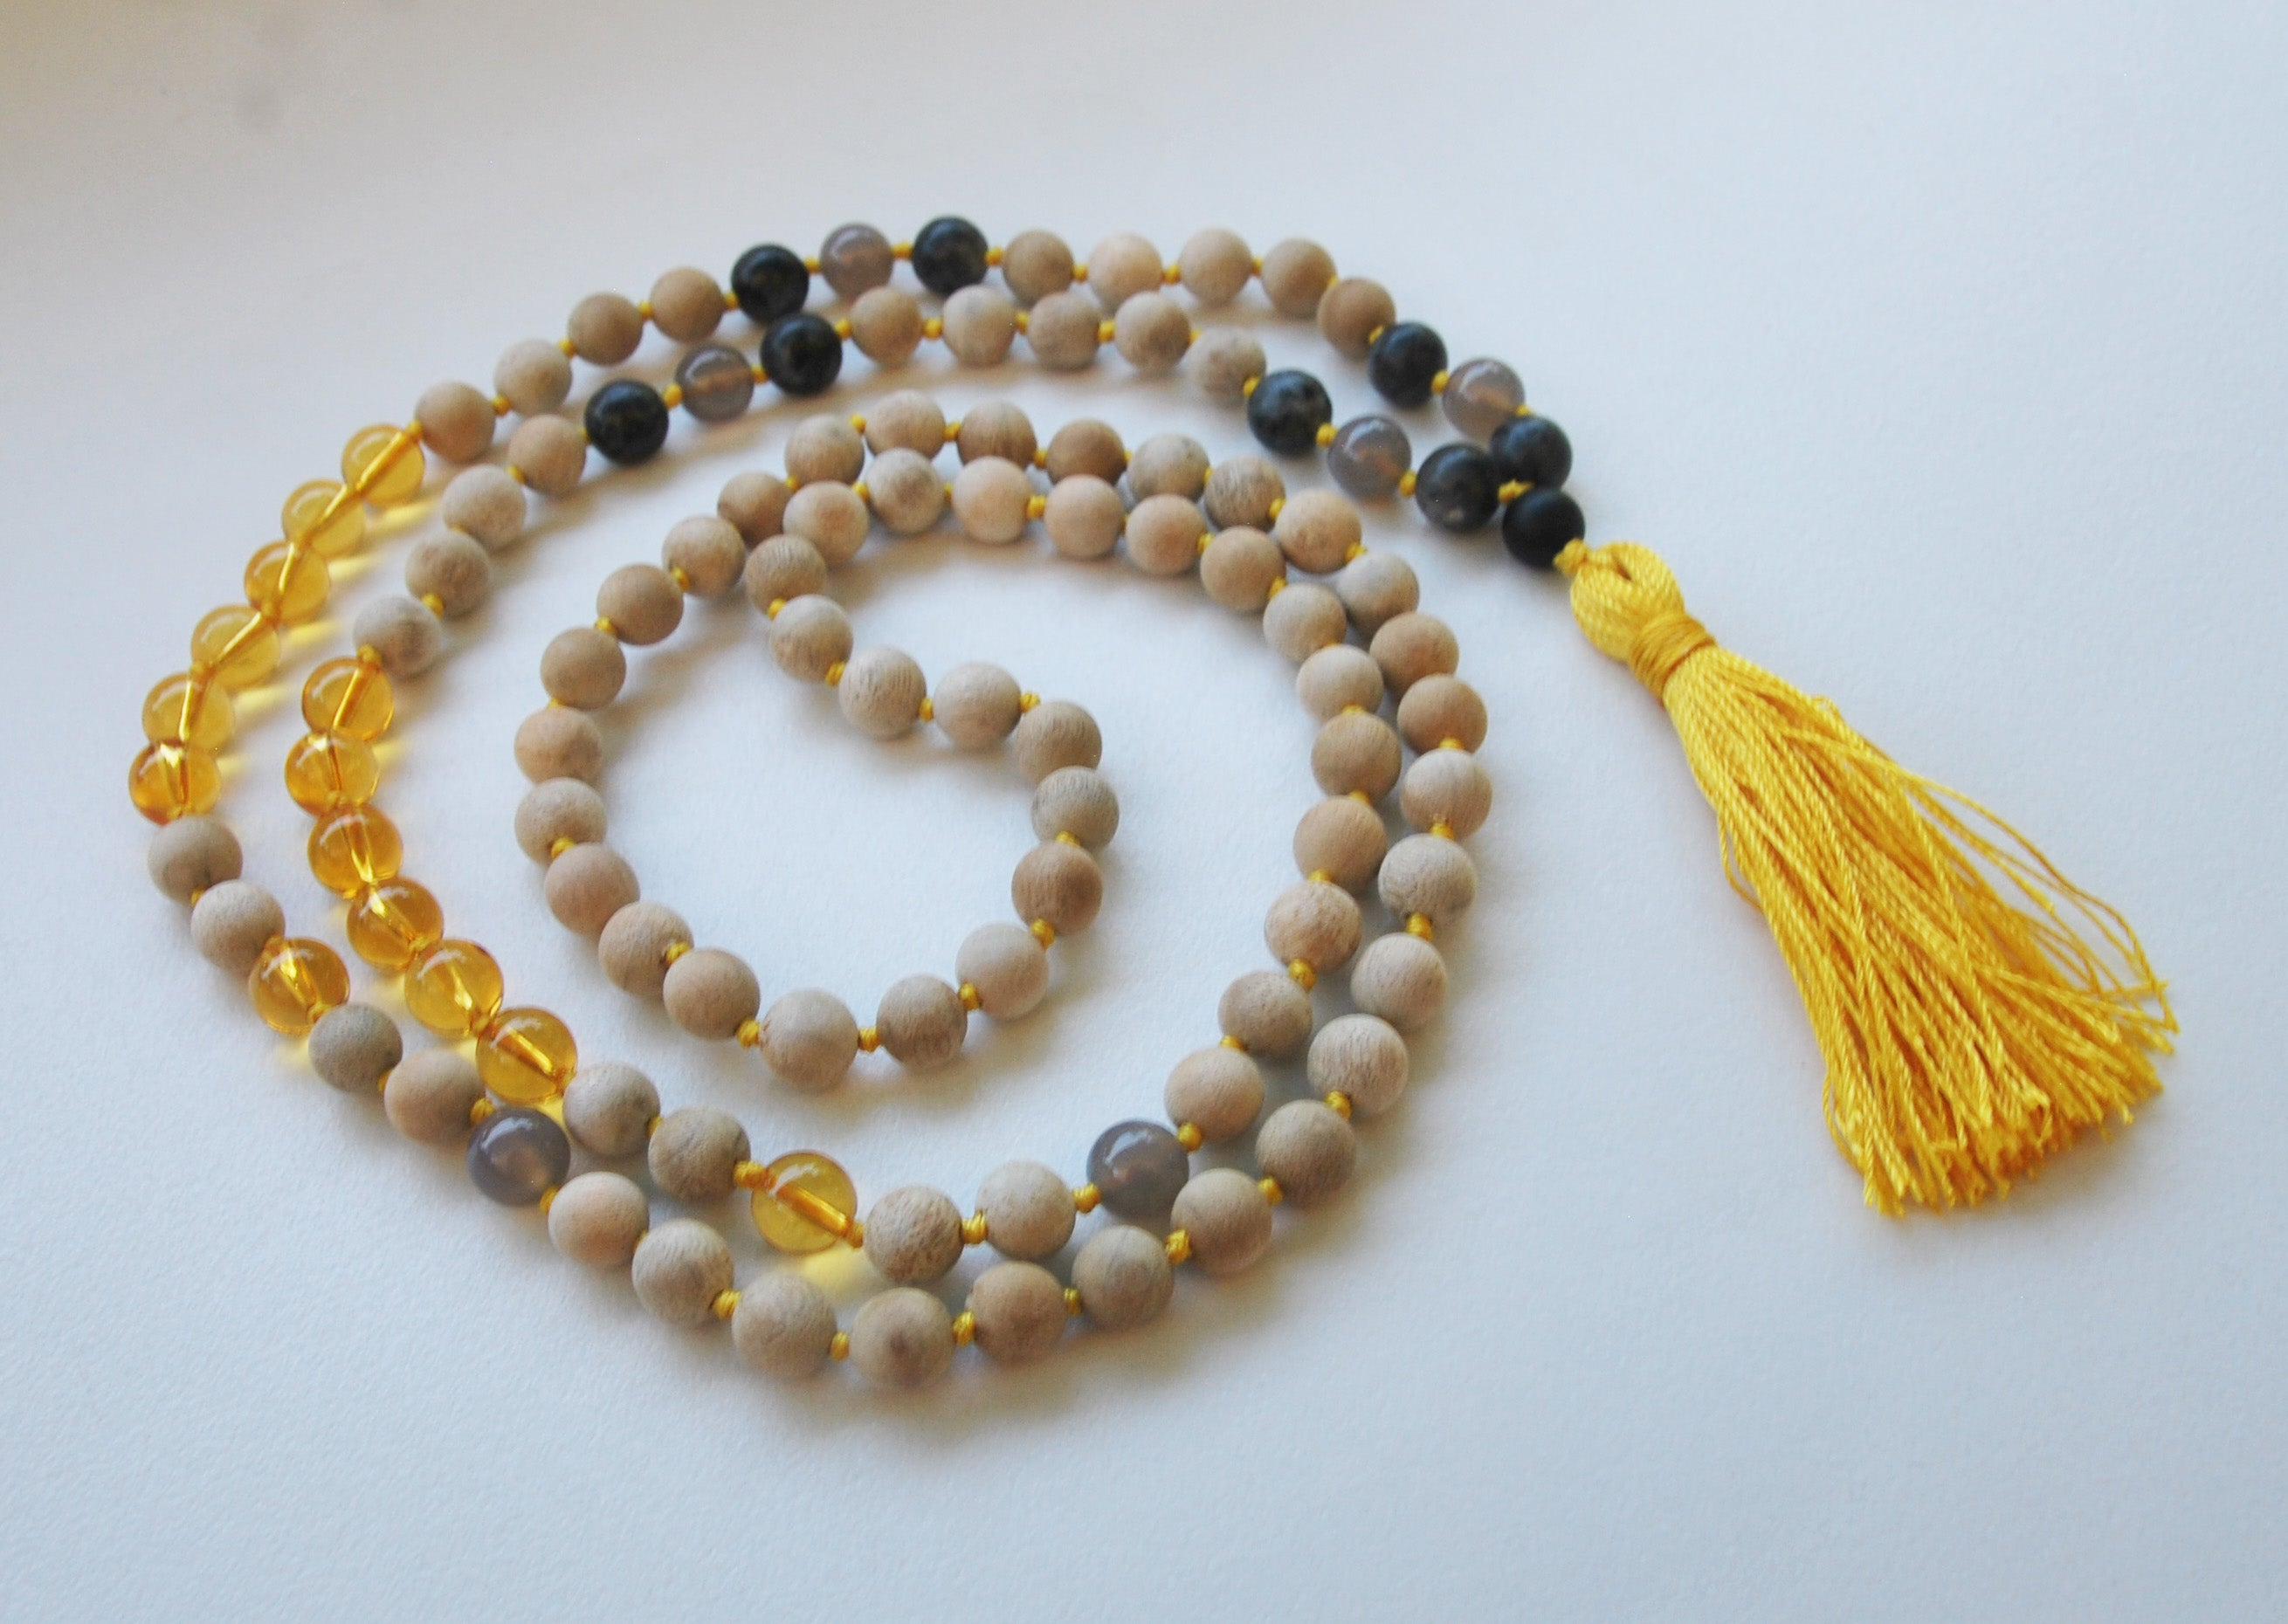 8mm Sandalwood & Citrine 108 Knotted Mala Necklace with Colored Tassel